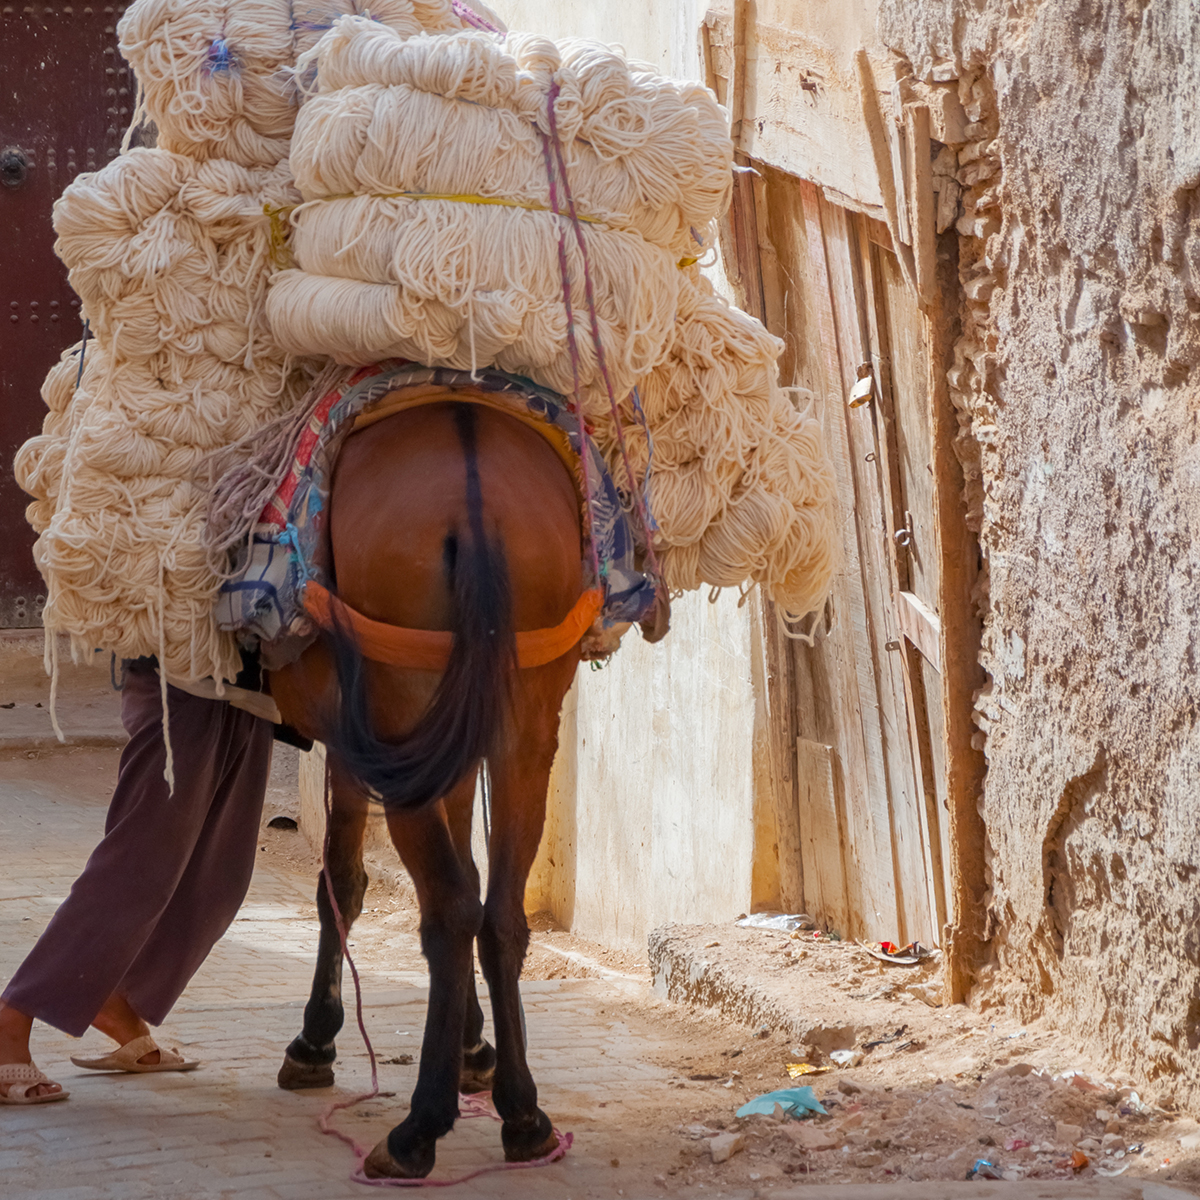 Donkey carrying heavy load of material